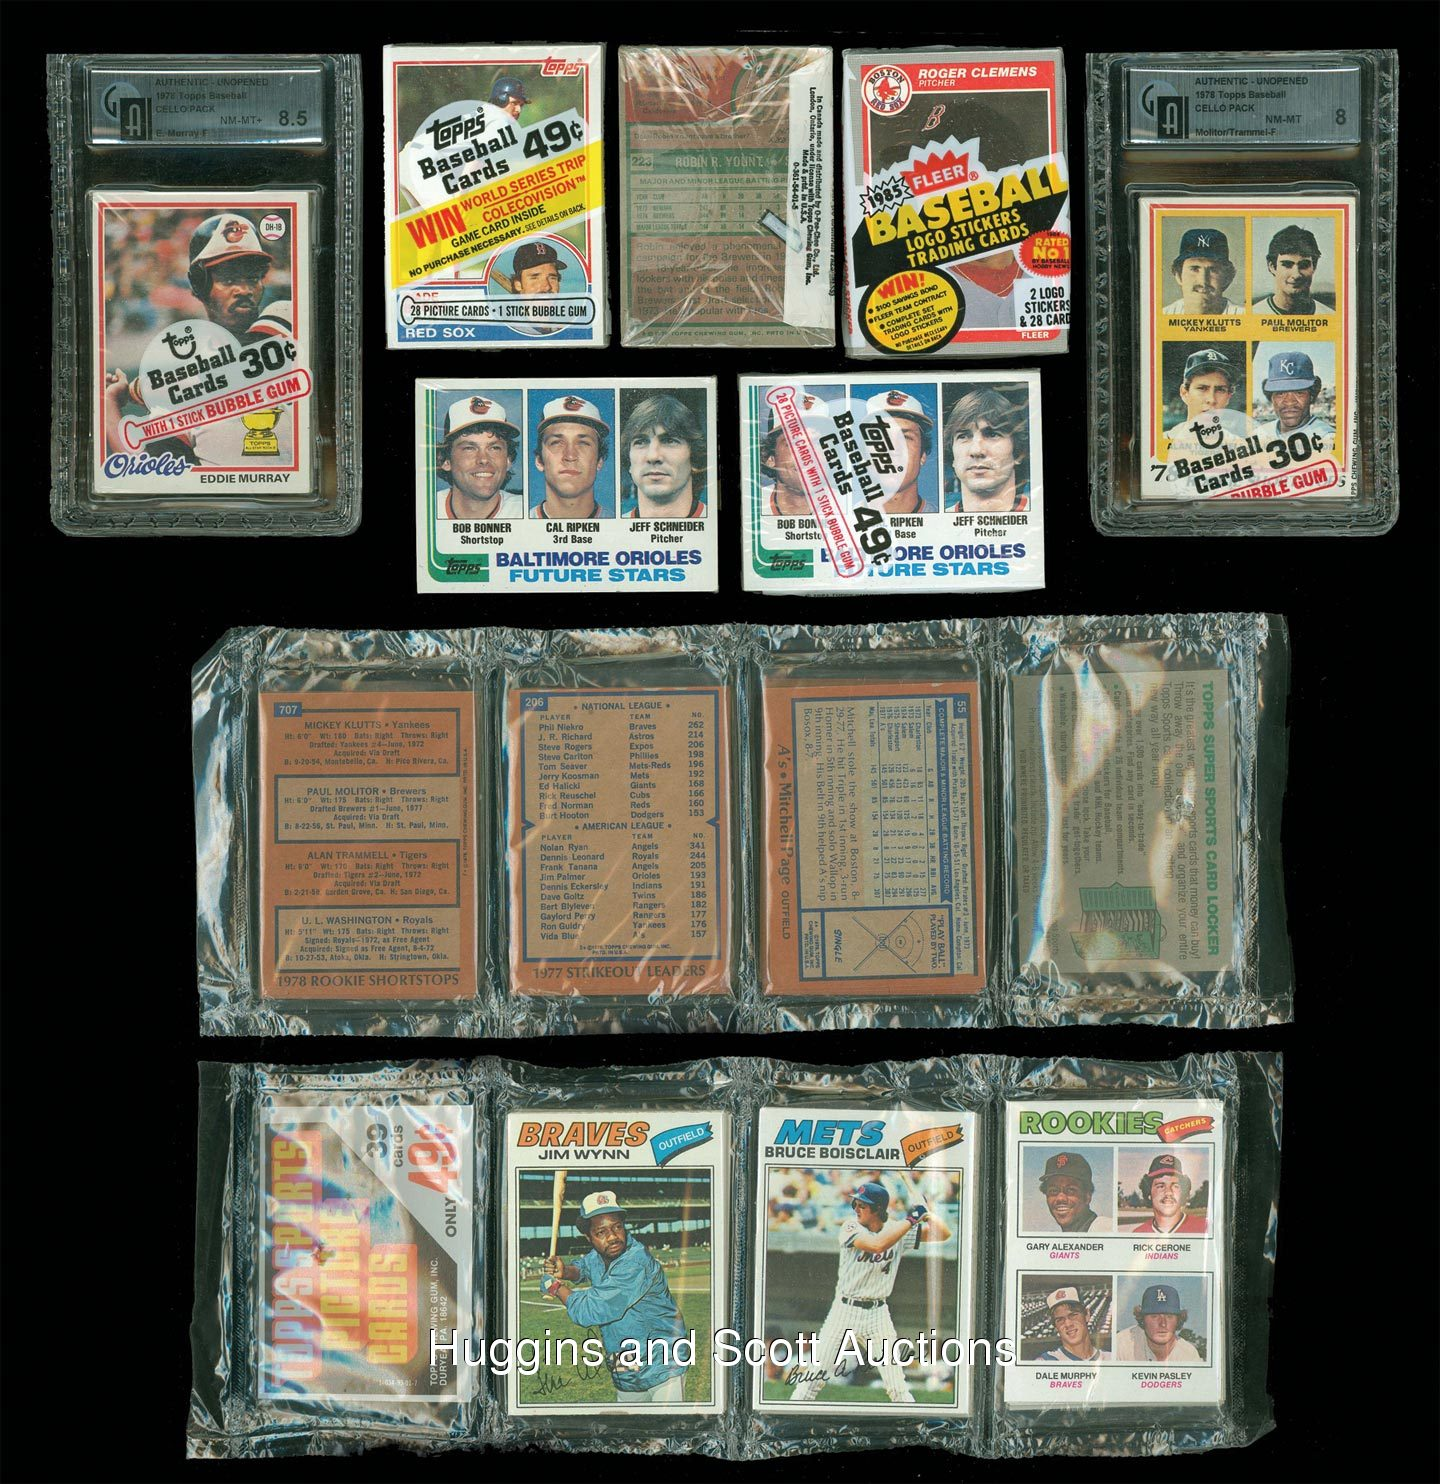 9 1975 1985 topps fleer baseball rack and cello packs with hall of fame rookies showing. Black Bedroom Furniture Sets. Home Design Ideas